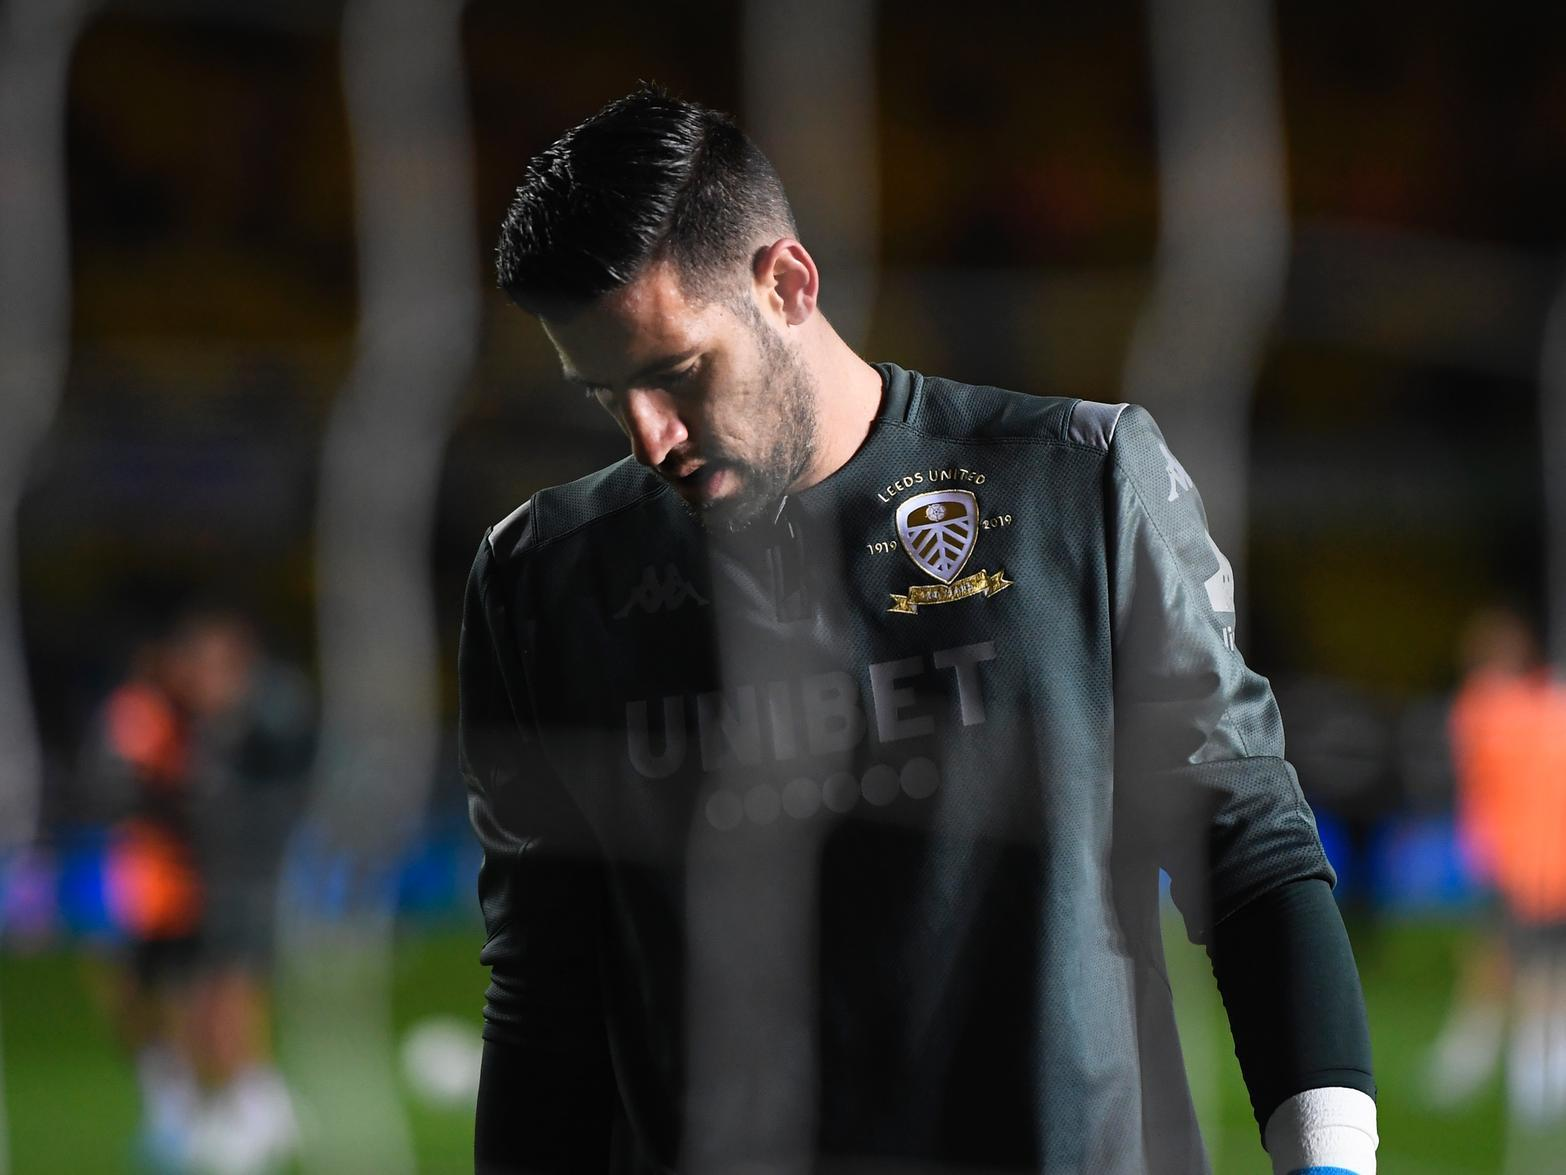 'Devastated' Leeds United goalkeeper Kiko Casilla responds to racism ban after FA charge is proven